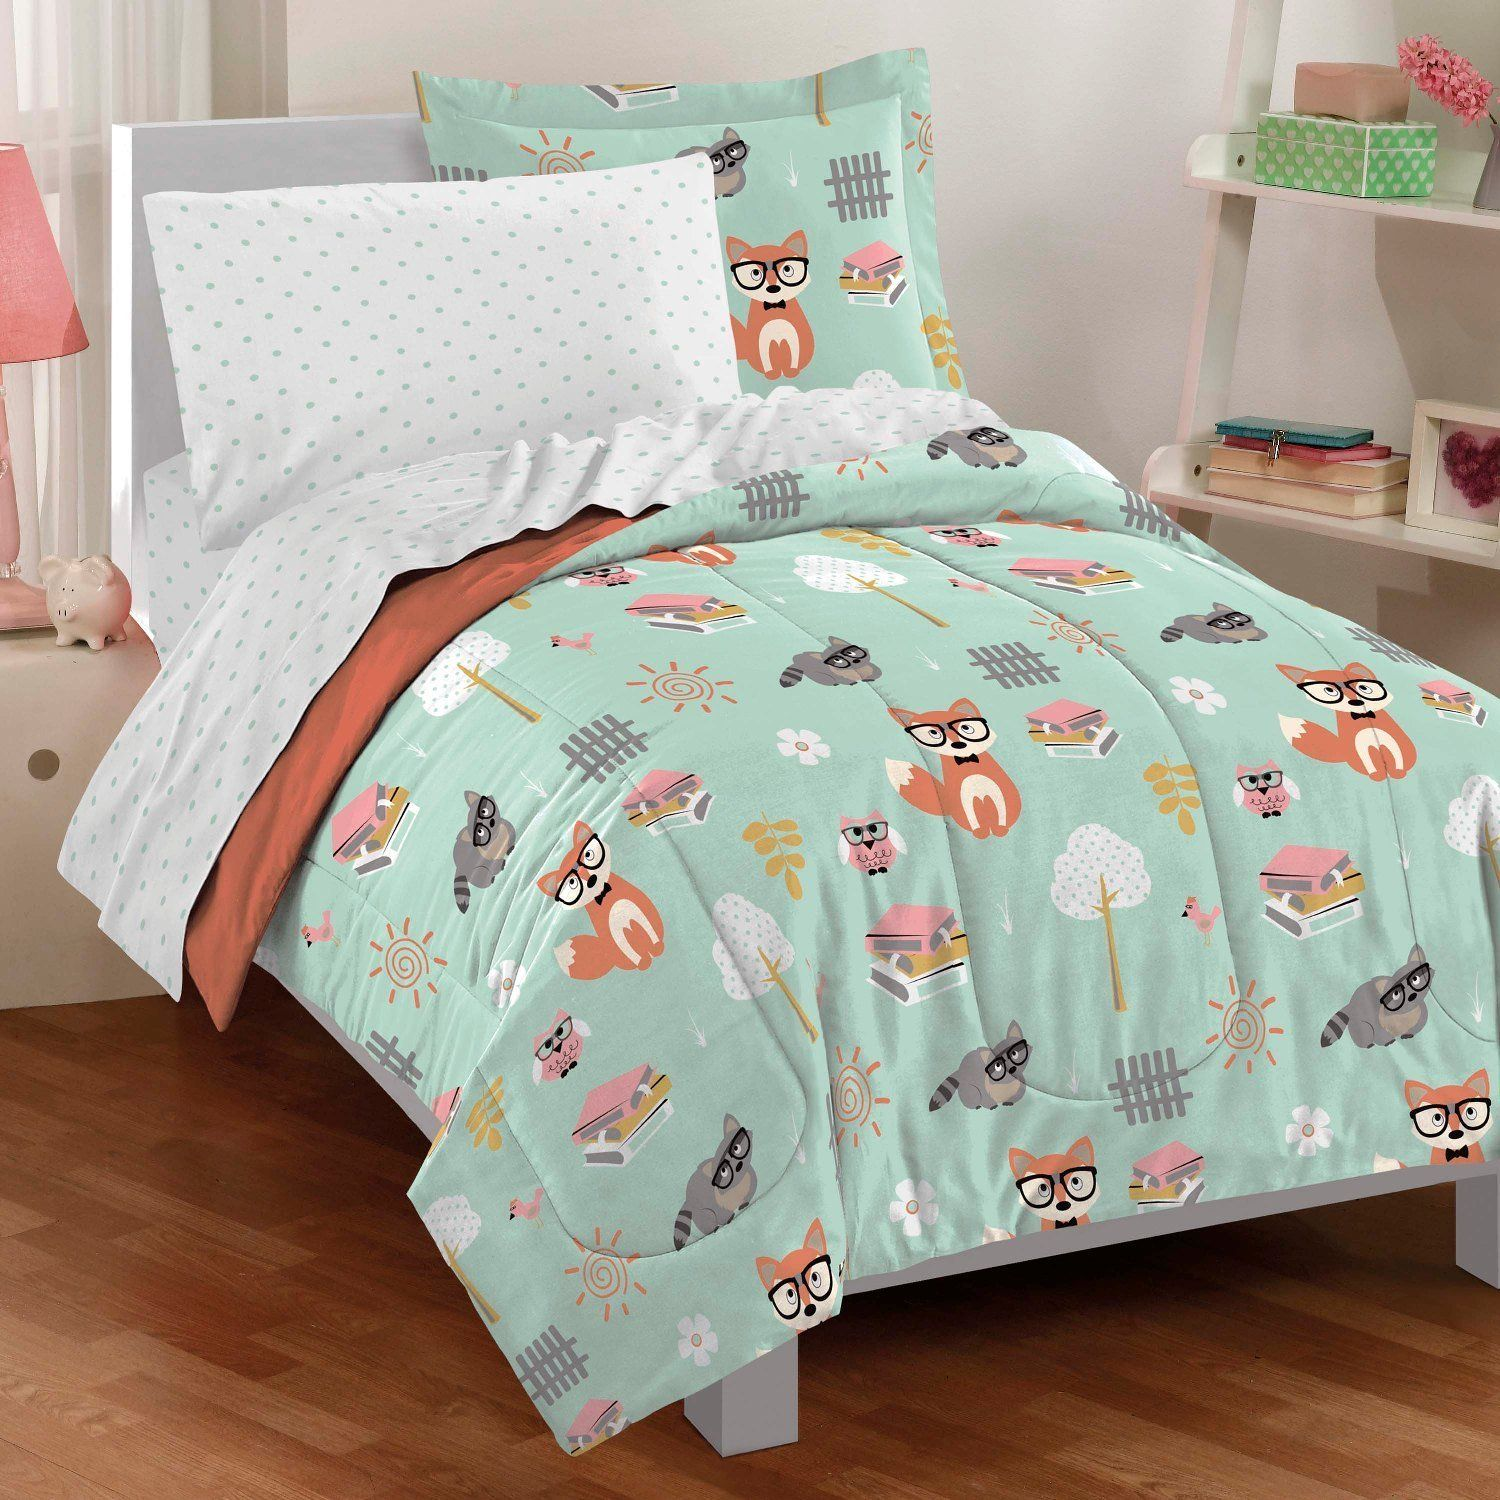 Teen Girl Bedding And Sets Kids SetsTwin